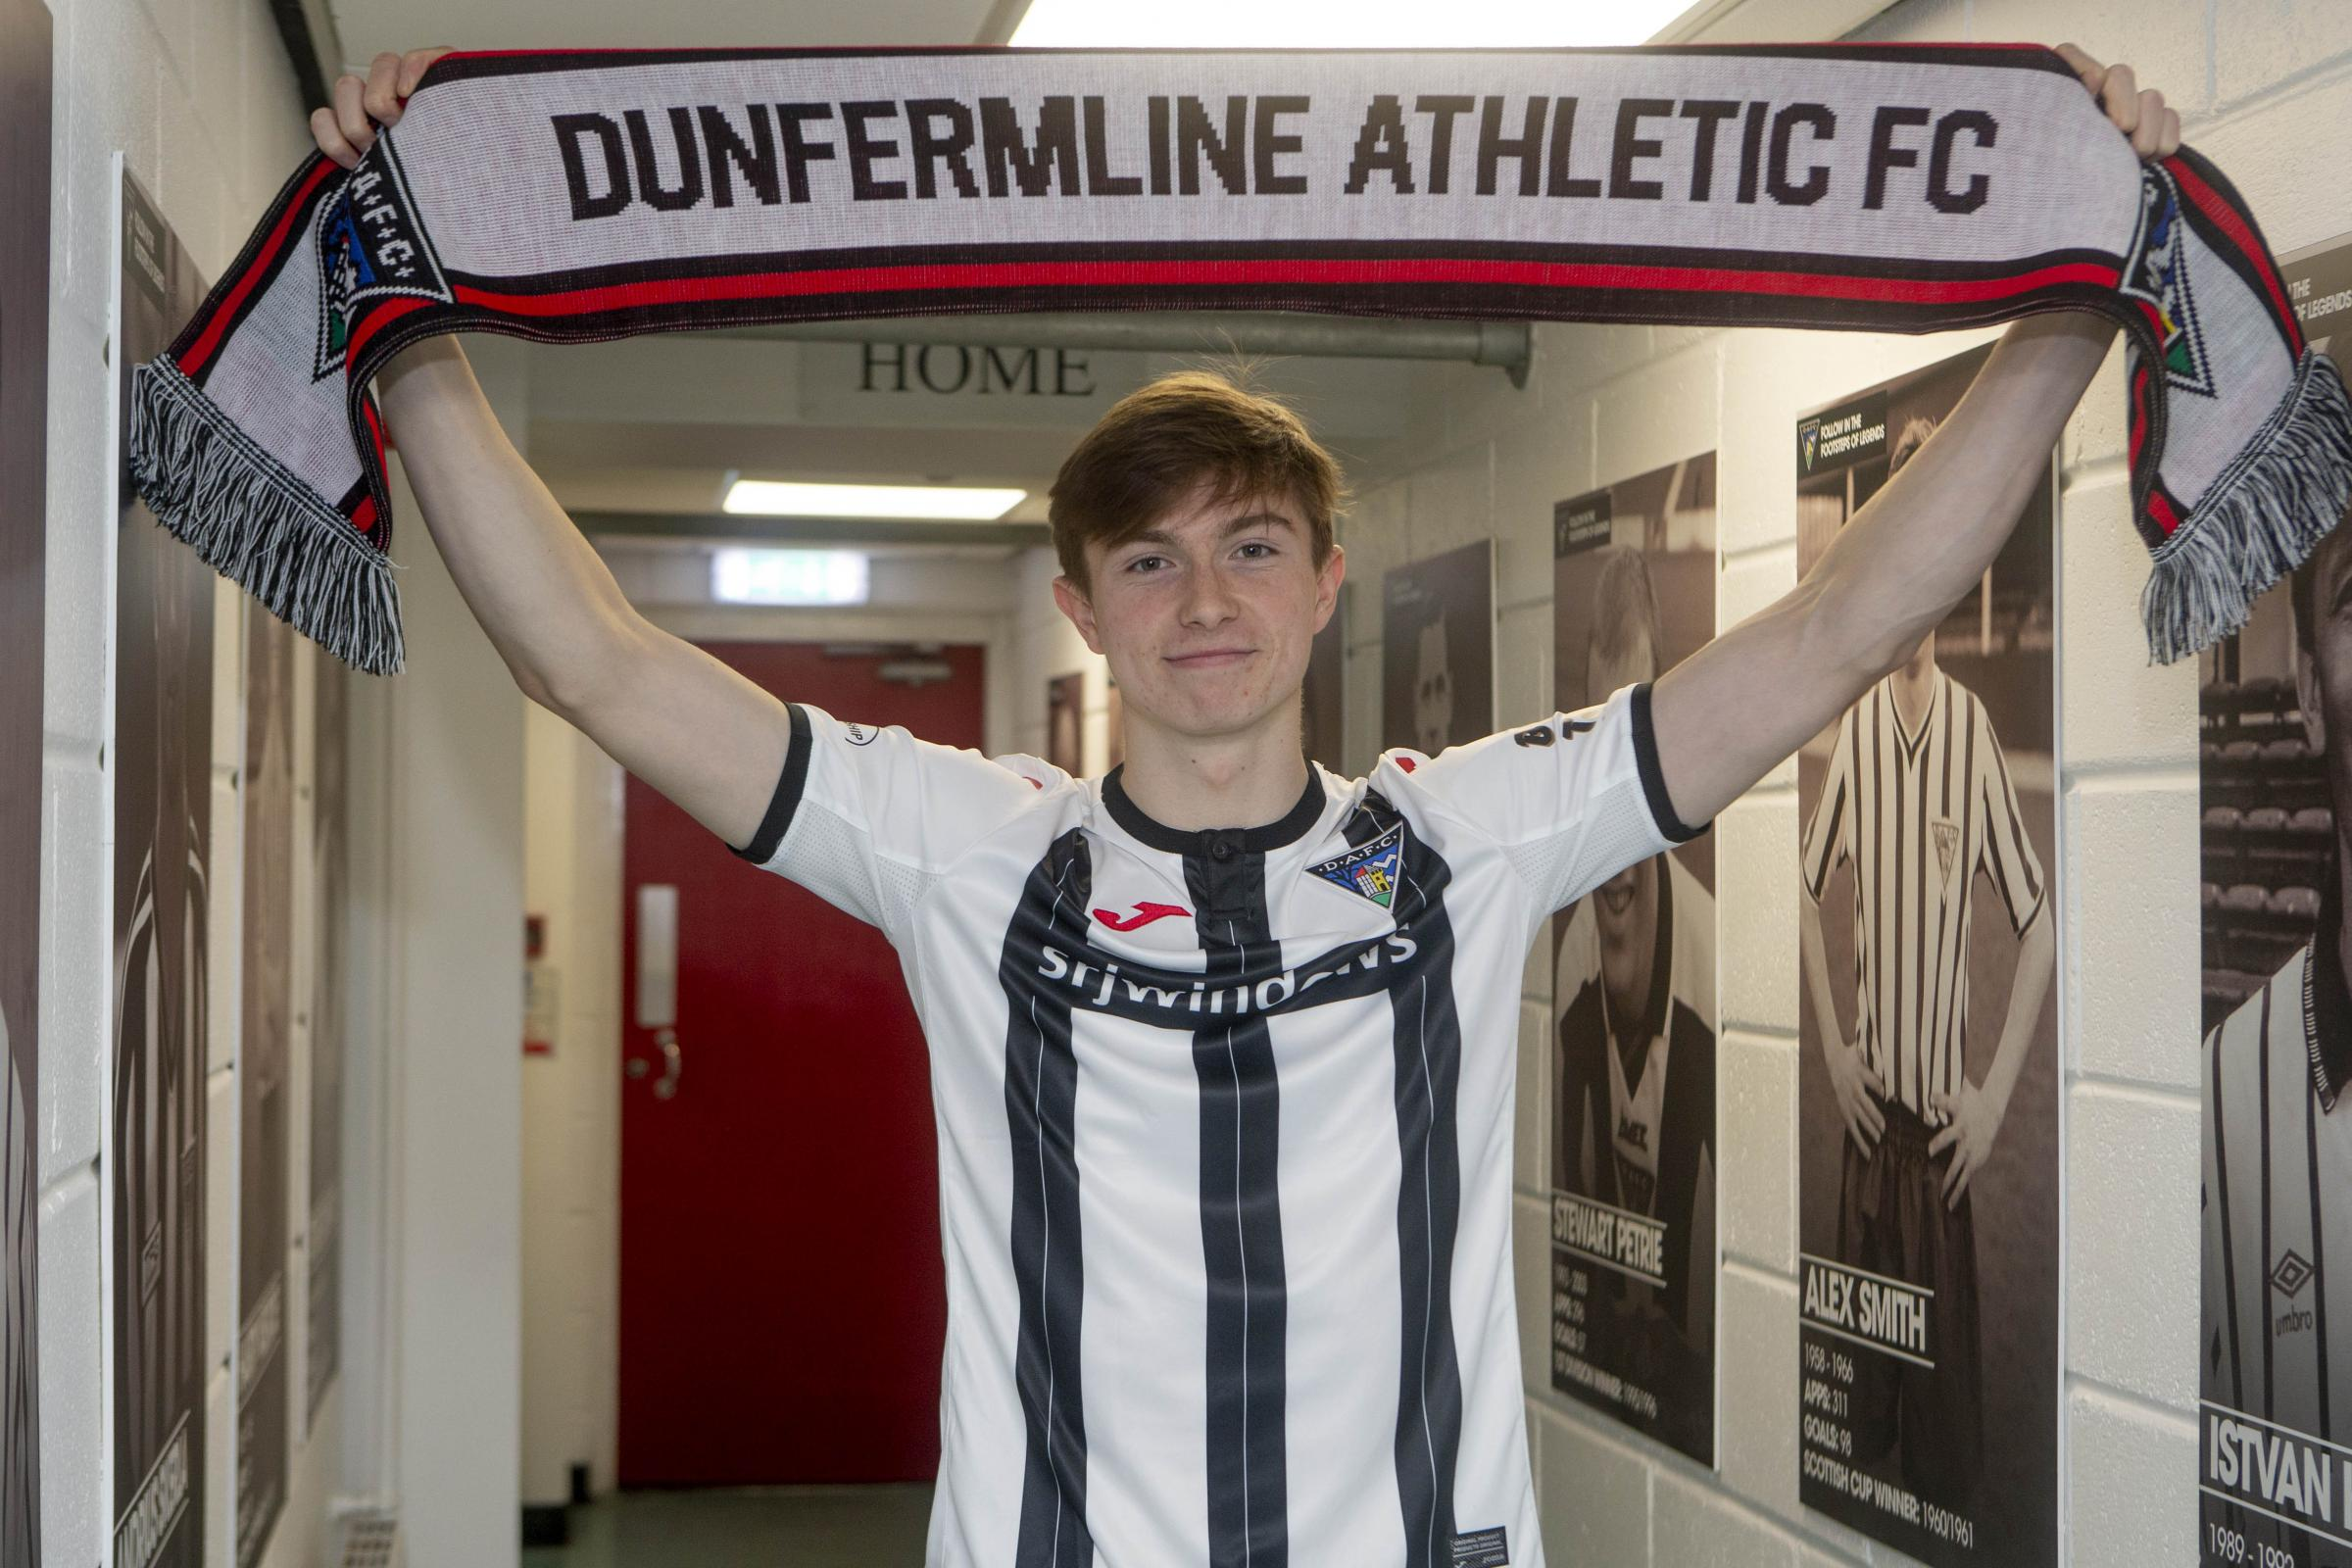 Dunfermline: Crystal Palace's Scott Banks signs on loan